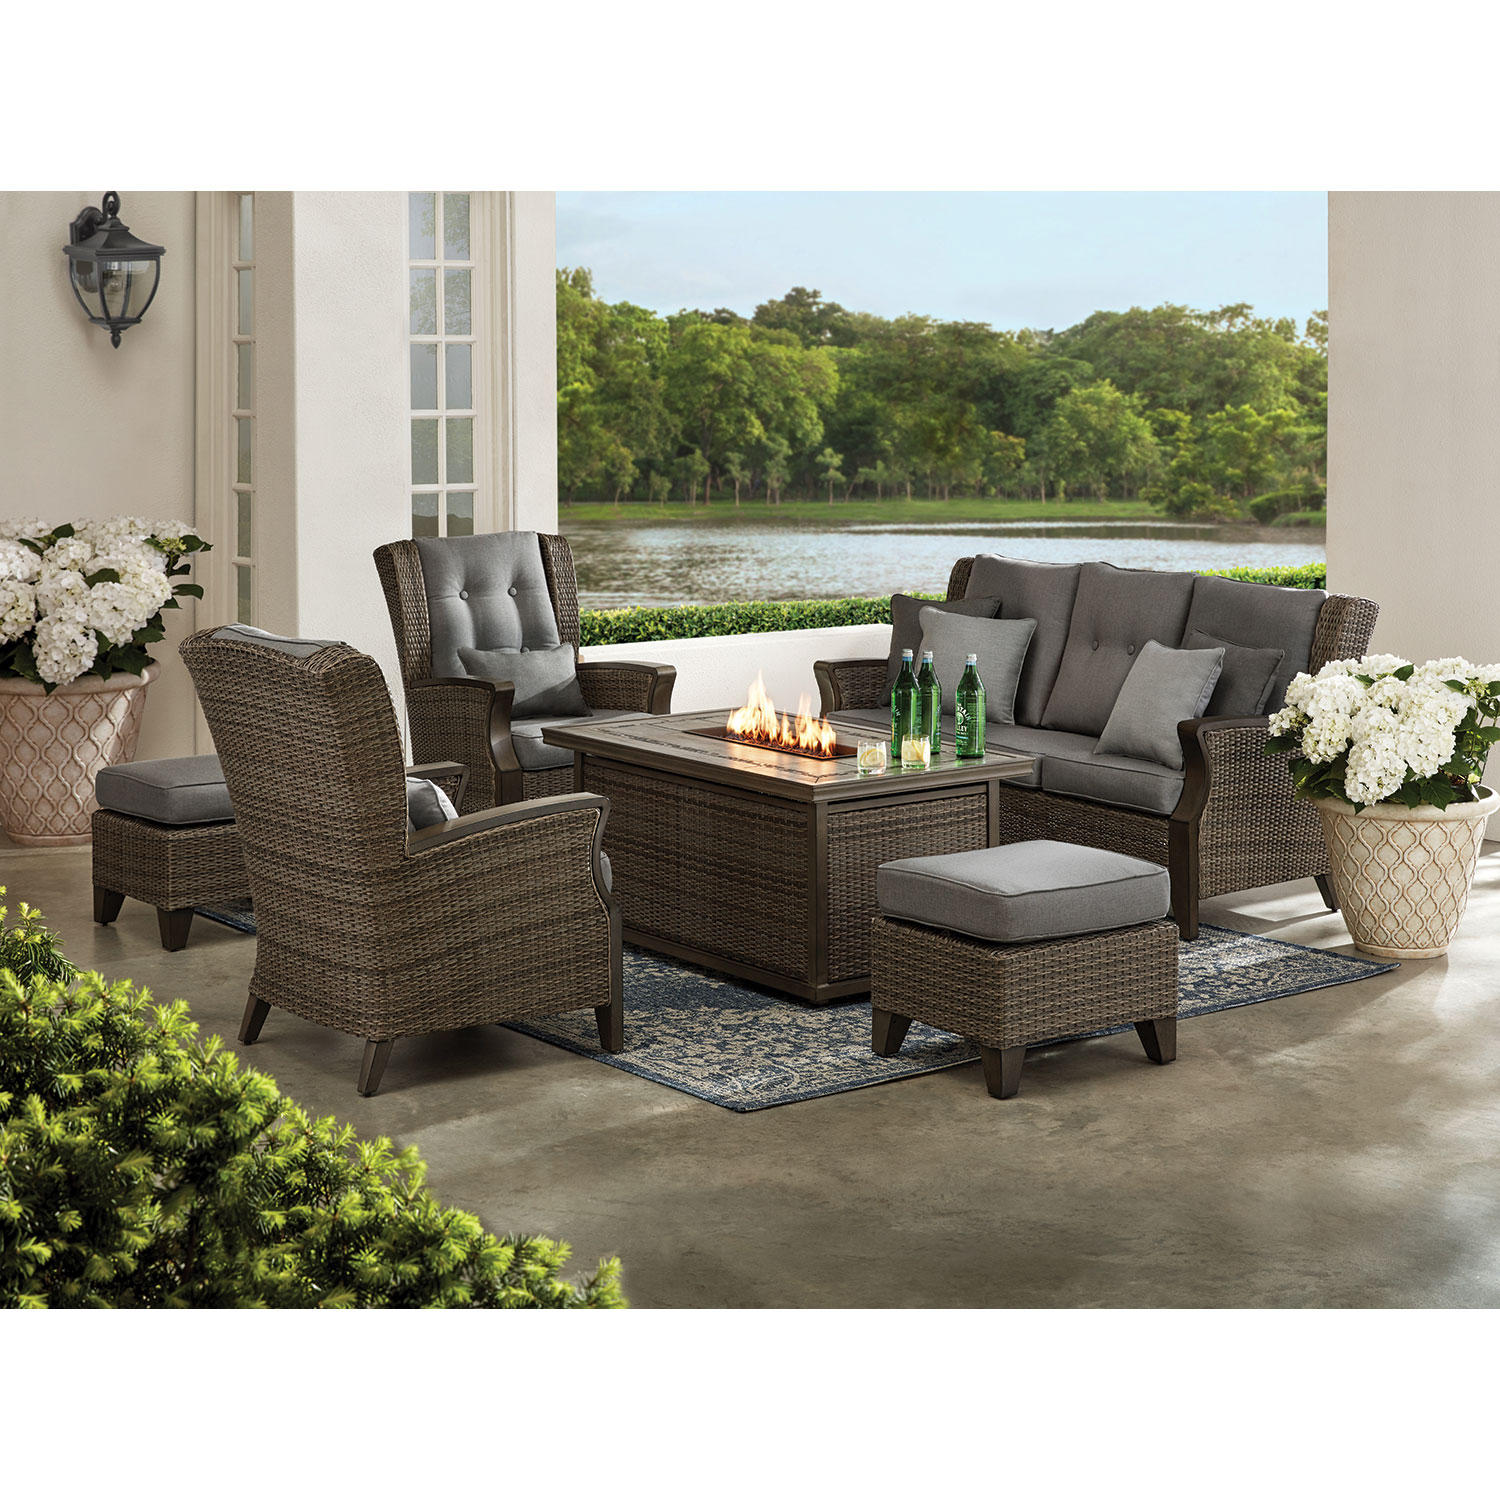 Member's Mark Agio Newcastle 6-Piece Patio Deep Seating Set with Fire Pit and Sunbrella Fabric